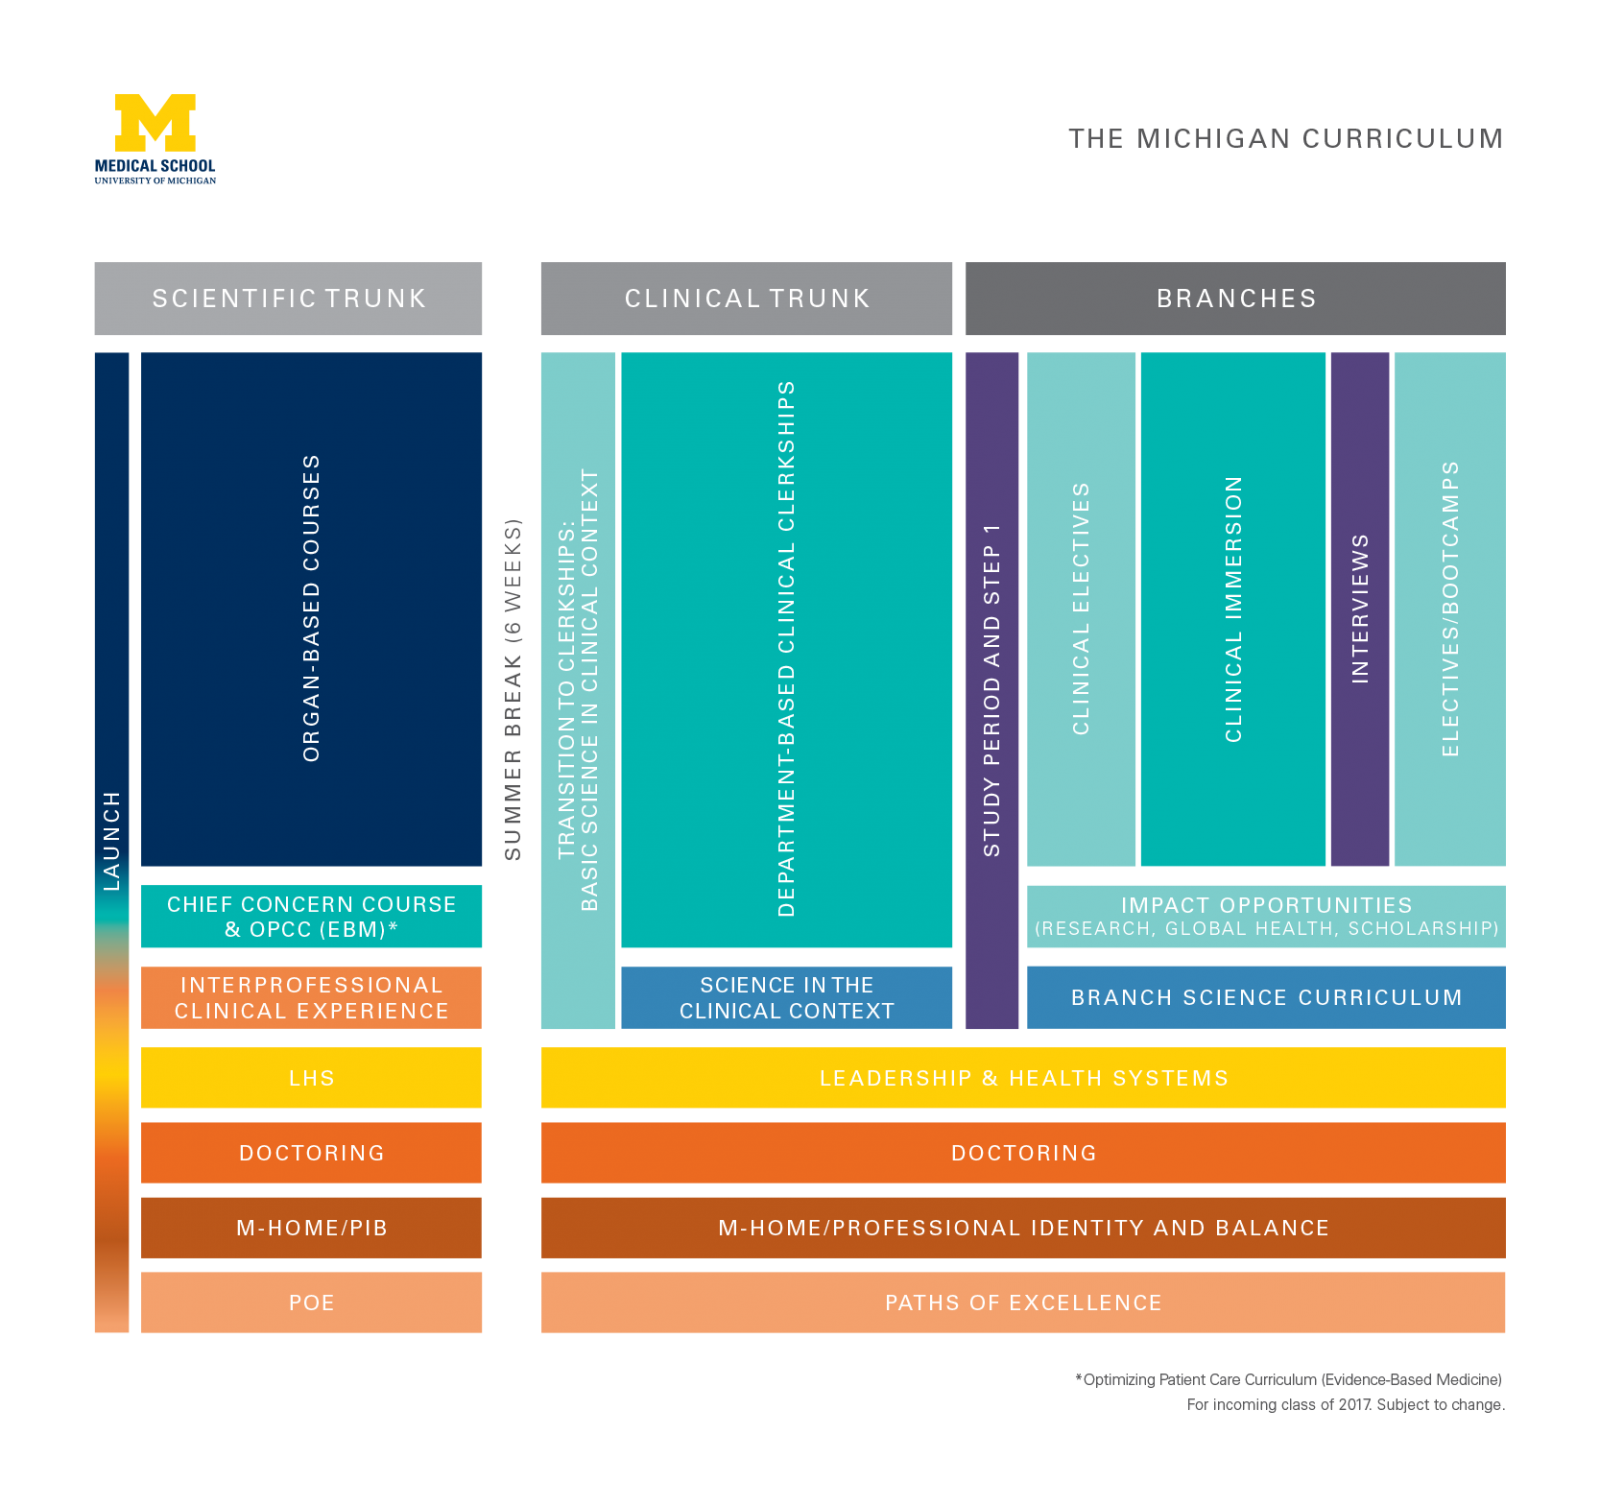 Overview graphic of medical school curriculum